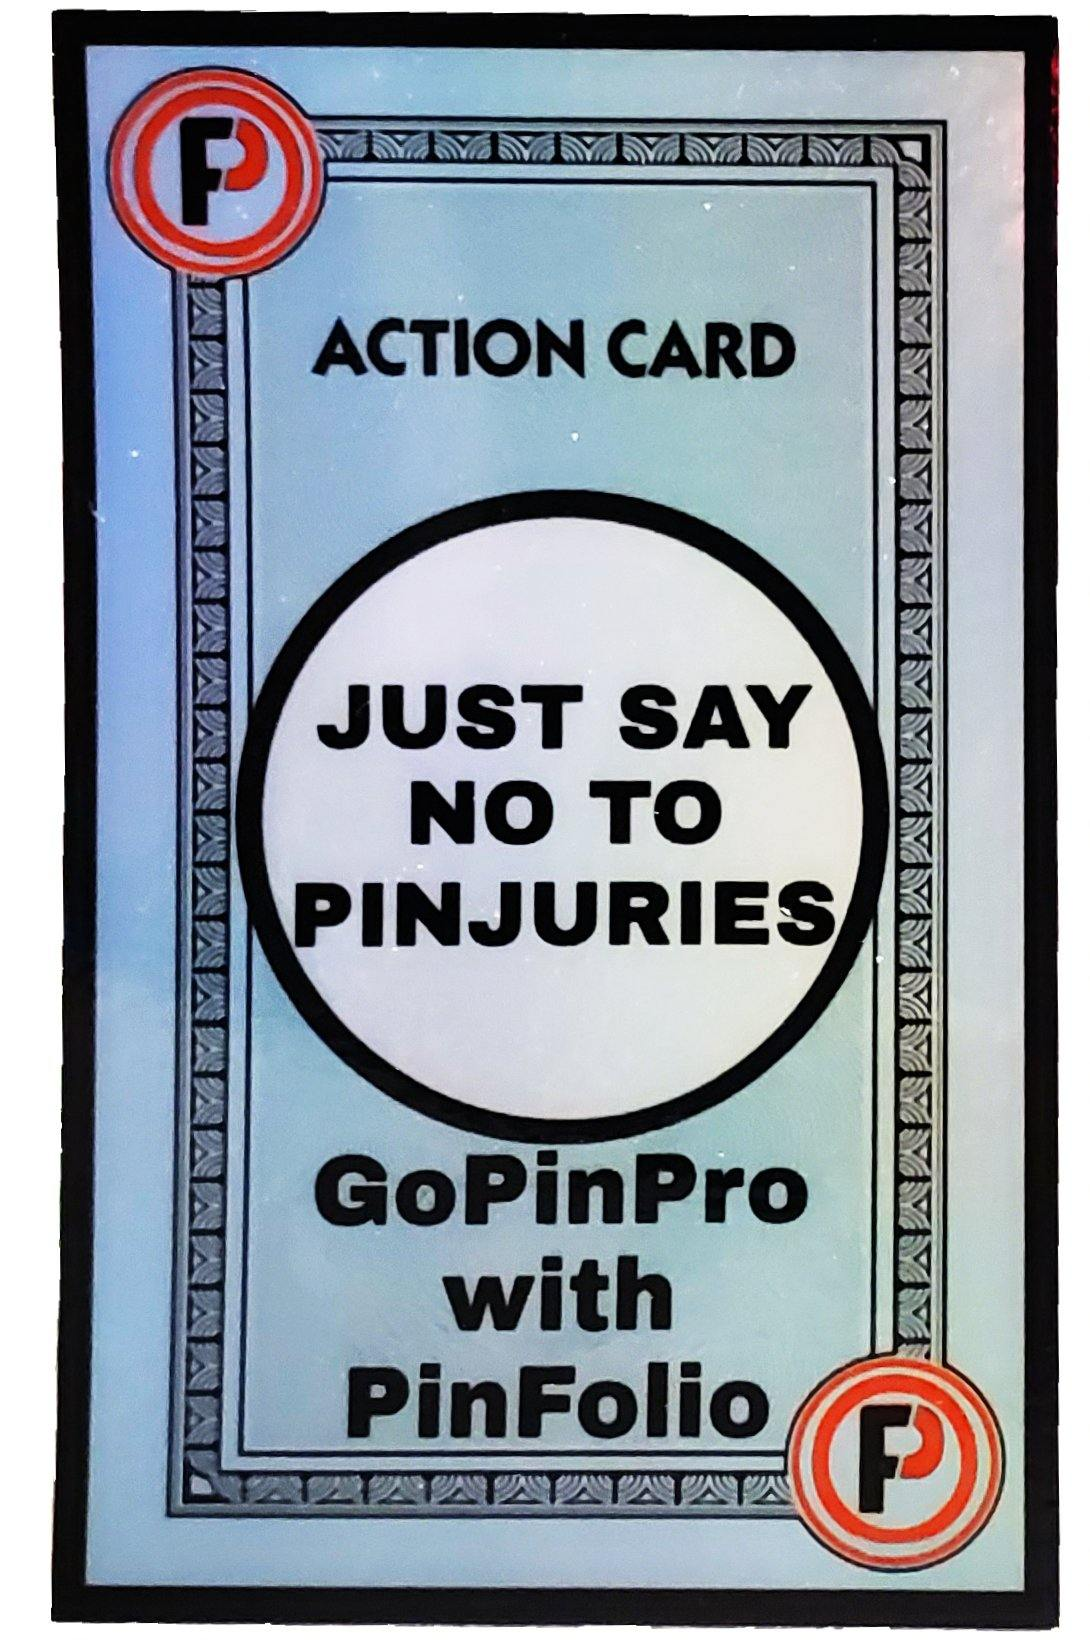 "Just say NO to PINjuries 2.21"" × 3"" holographic vinyl stickers - GoPinPro"